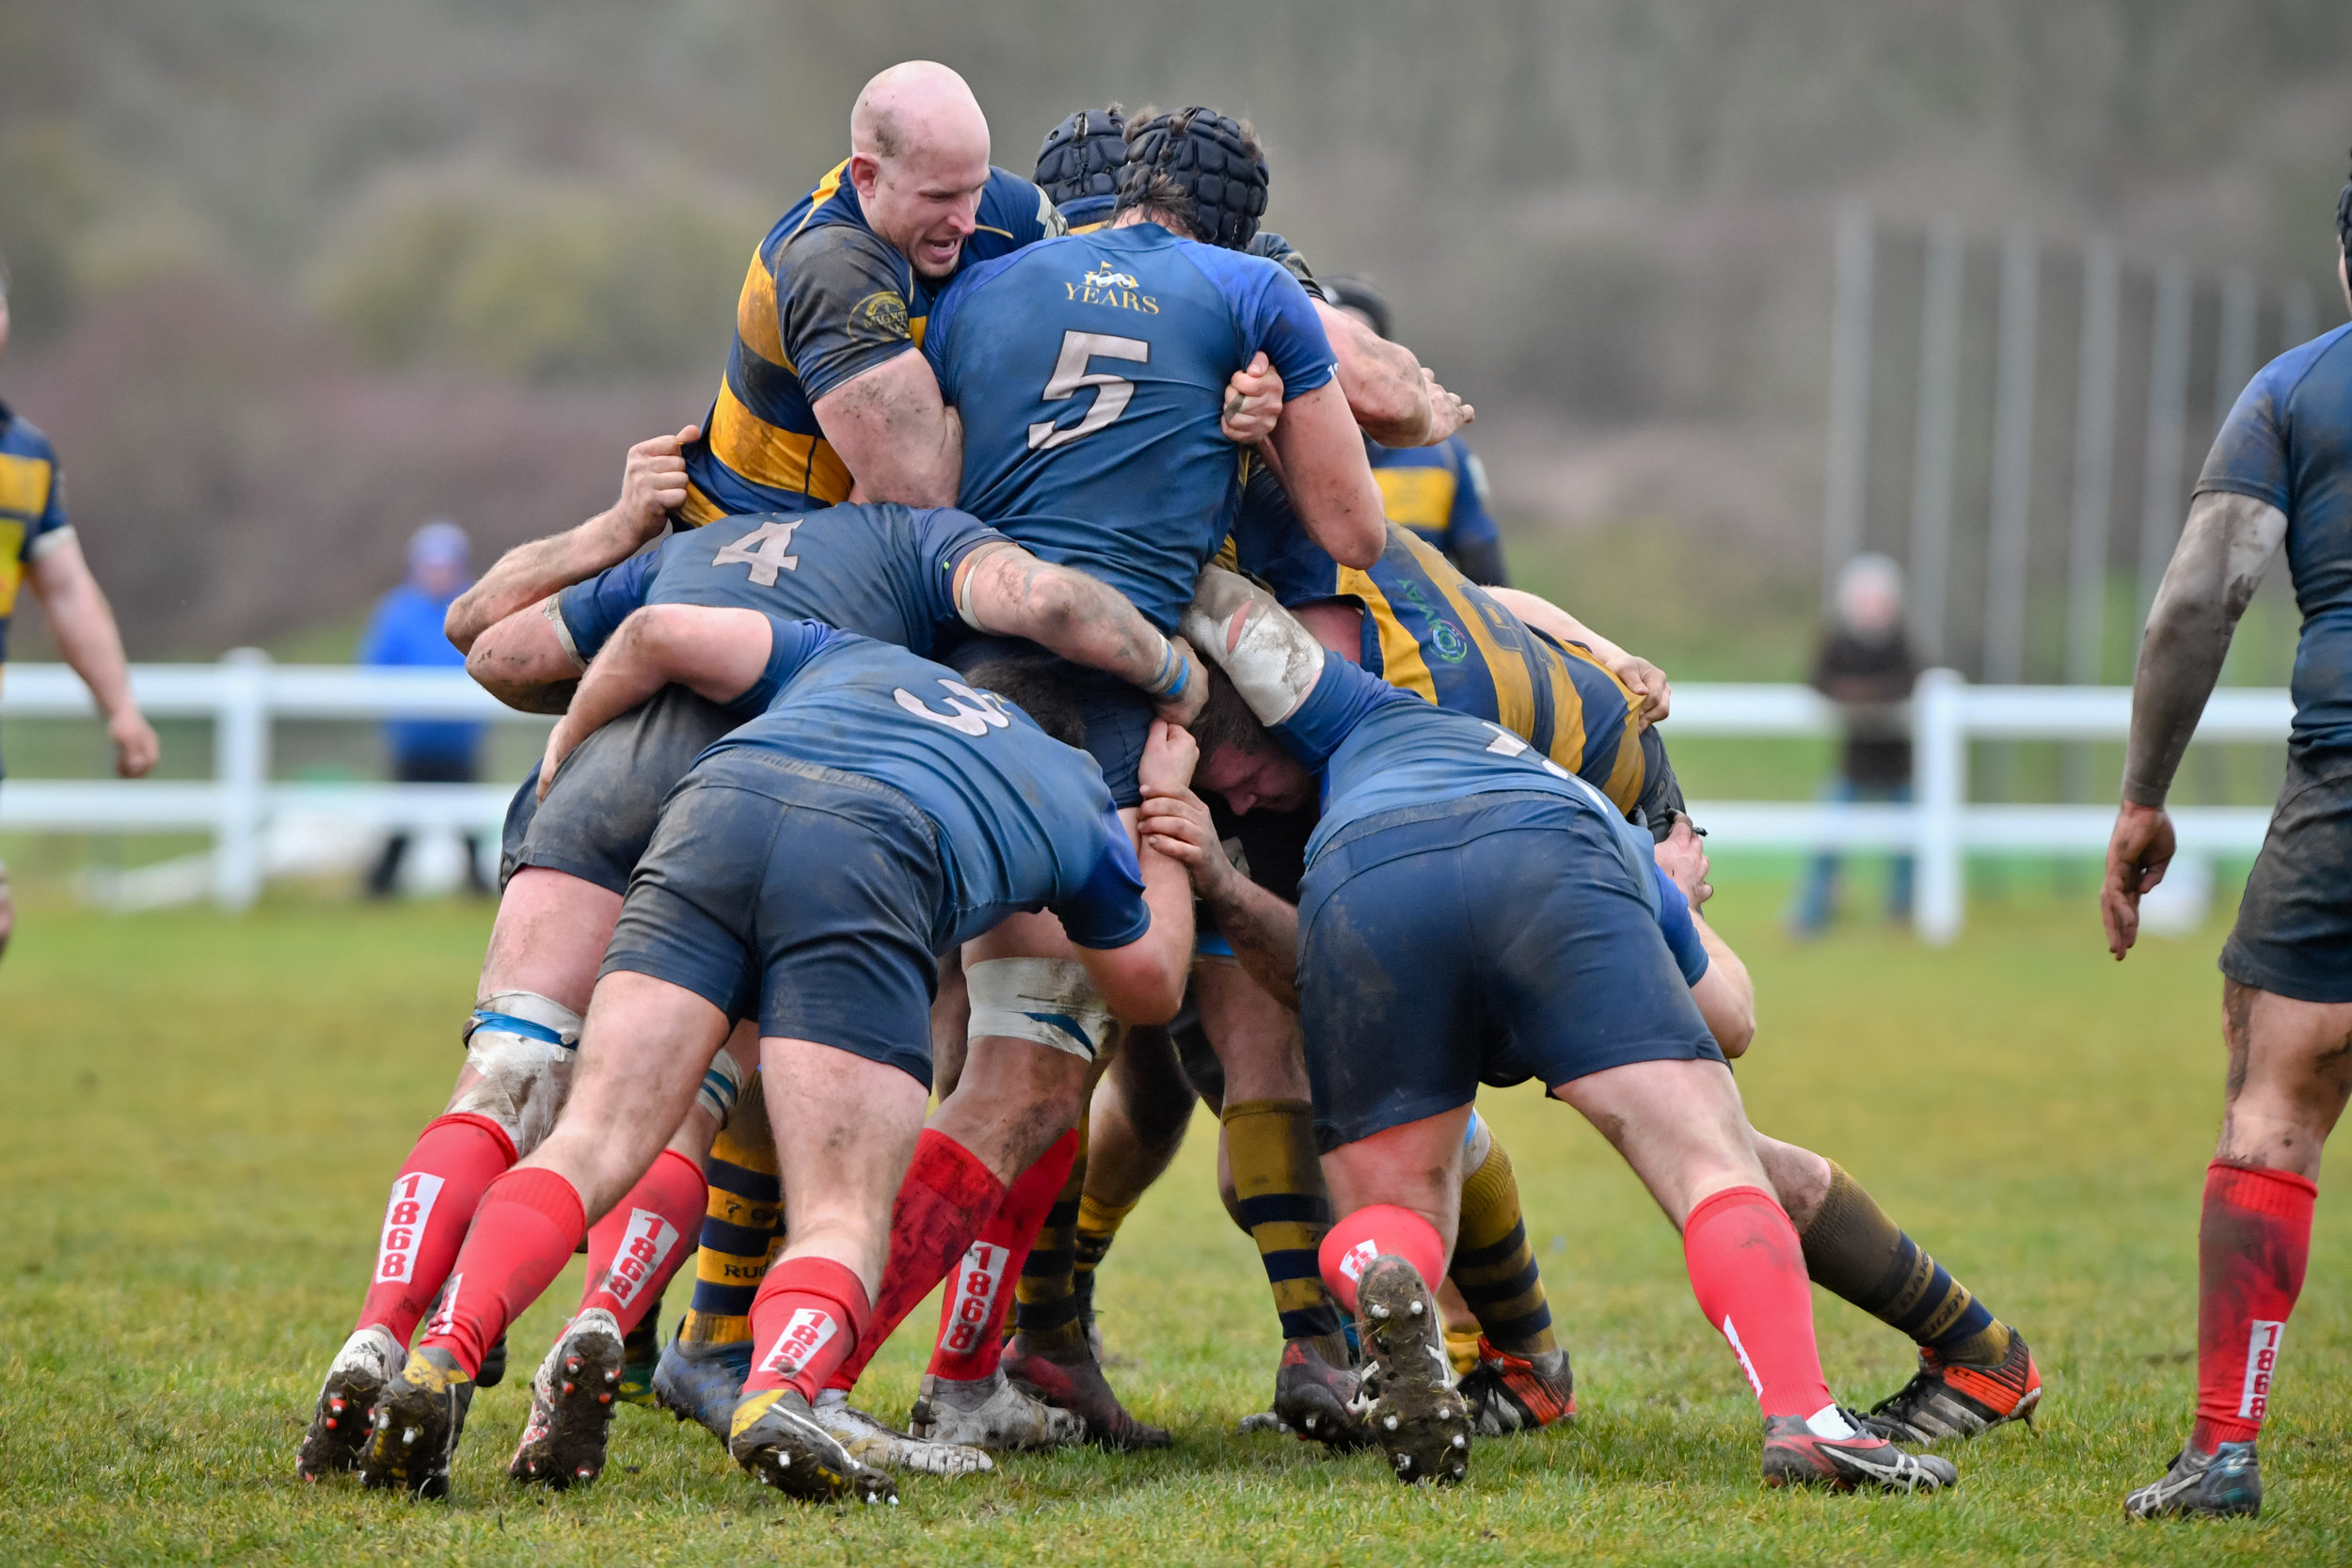 Oaks came out on top when they faced top of the table Brighton Blues two weeks ago, making it tight at the top. Photo Credit: David Purday